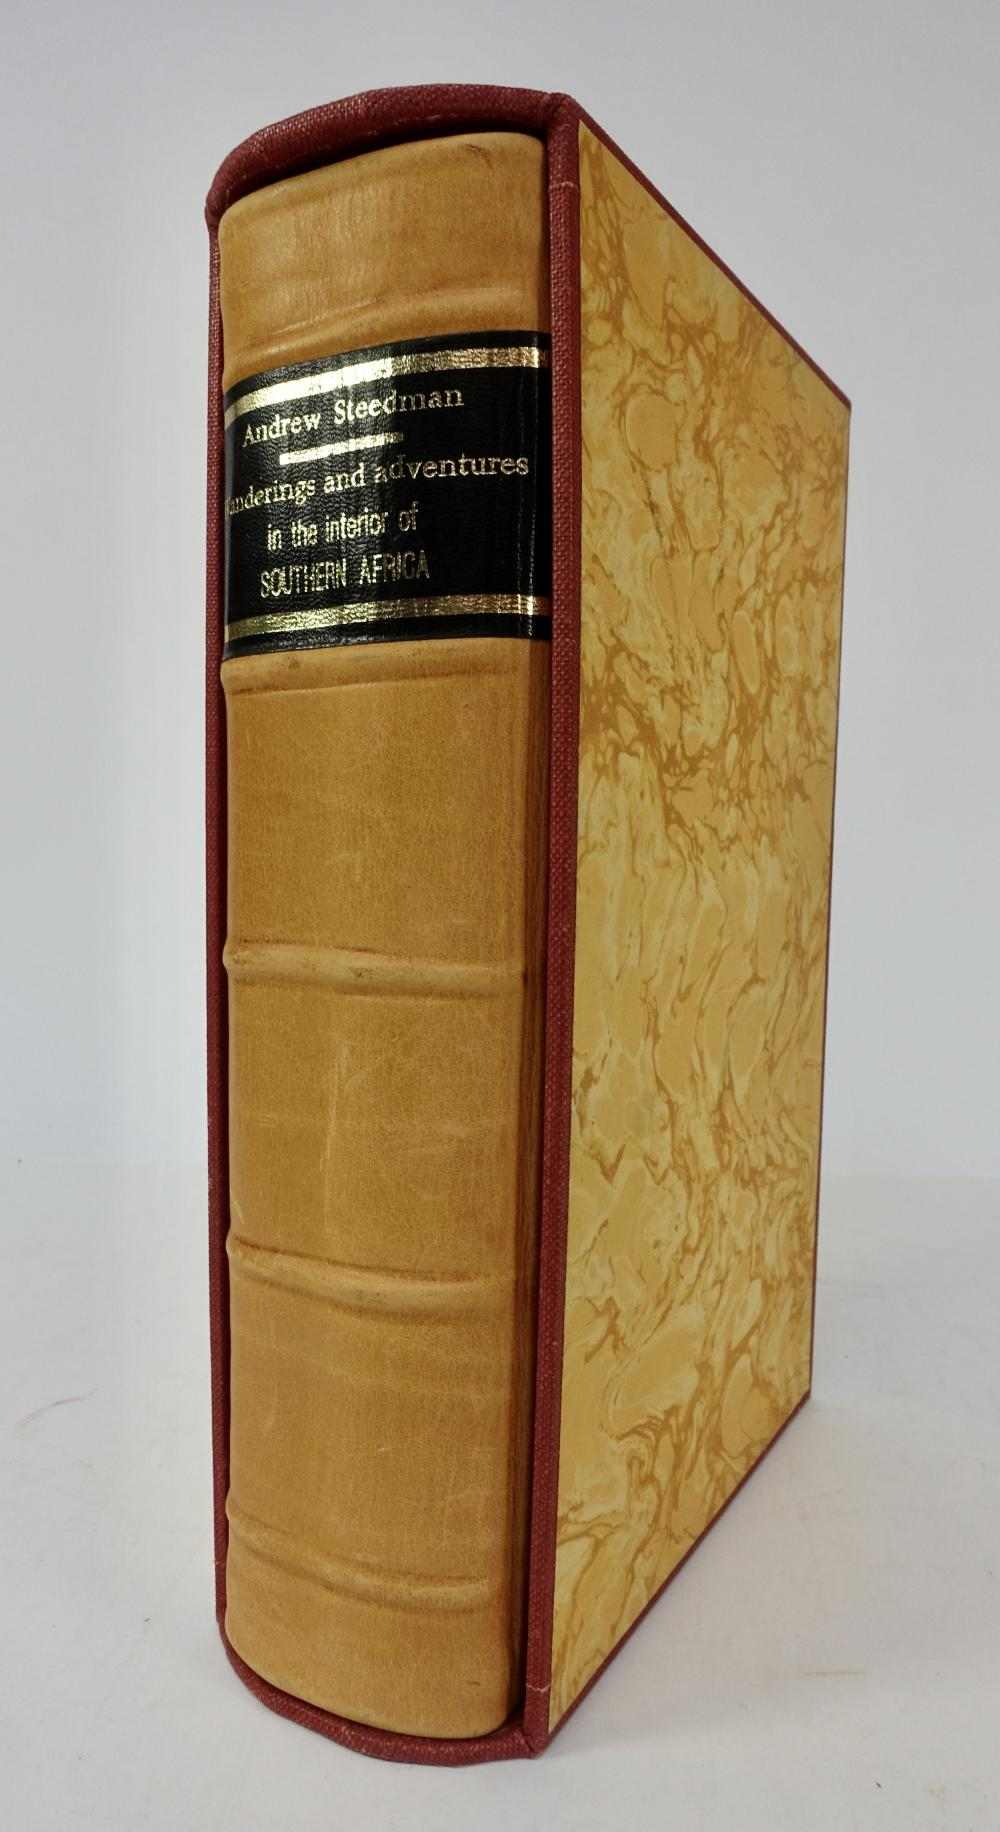 STEEDMAN, A. Wanderings and Adventures in the Interior of Southern Africa. Lond